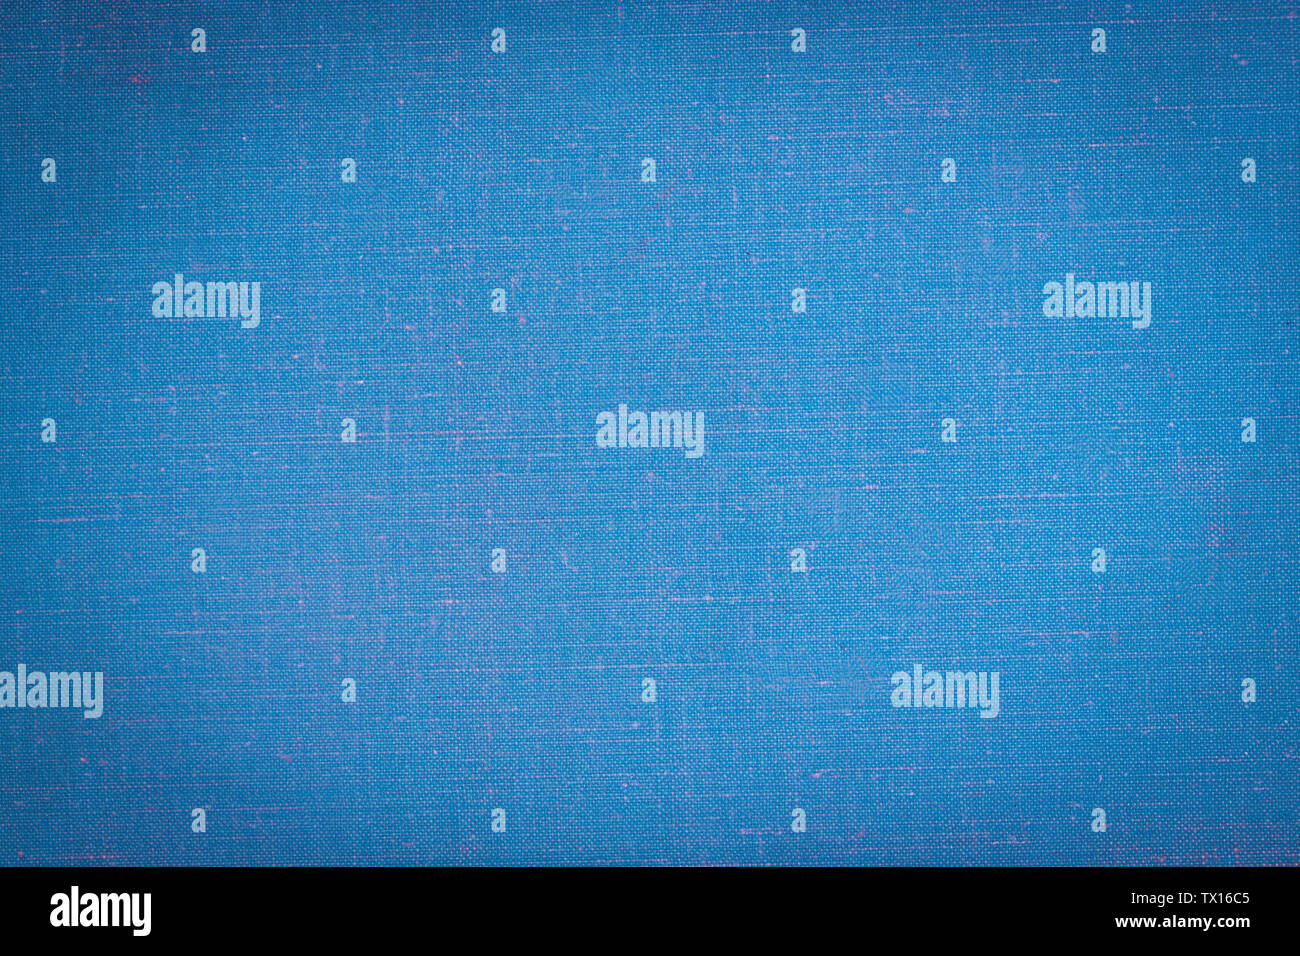 A vintage cloth book cover with a blue screen pattern, grunge background textures. - Stock Image